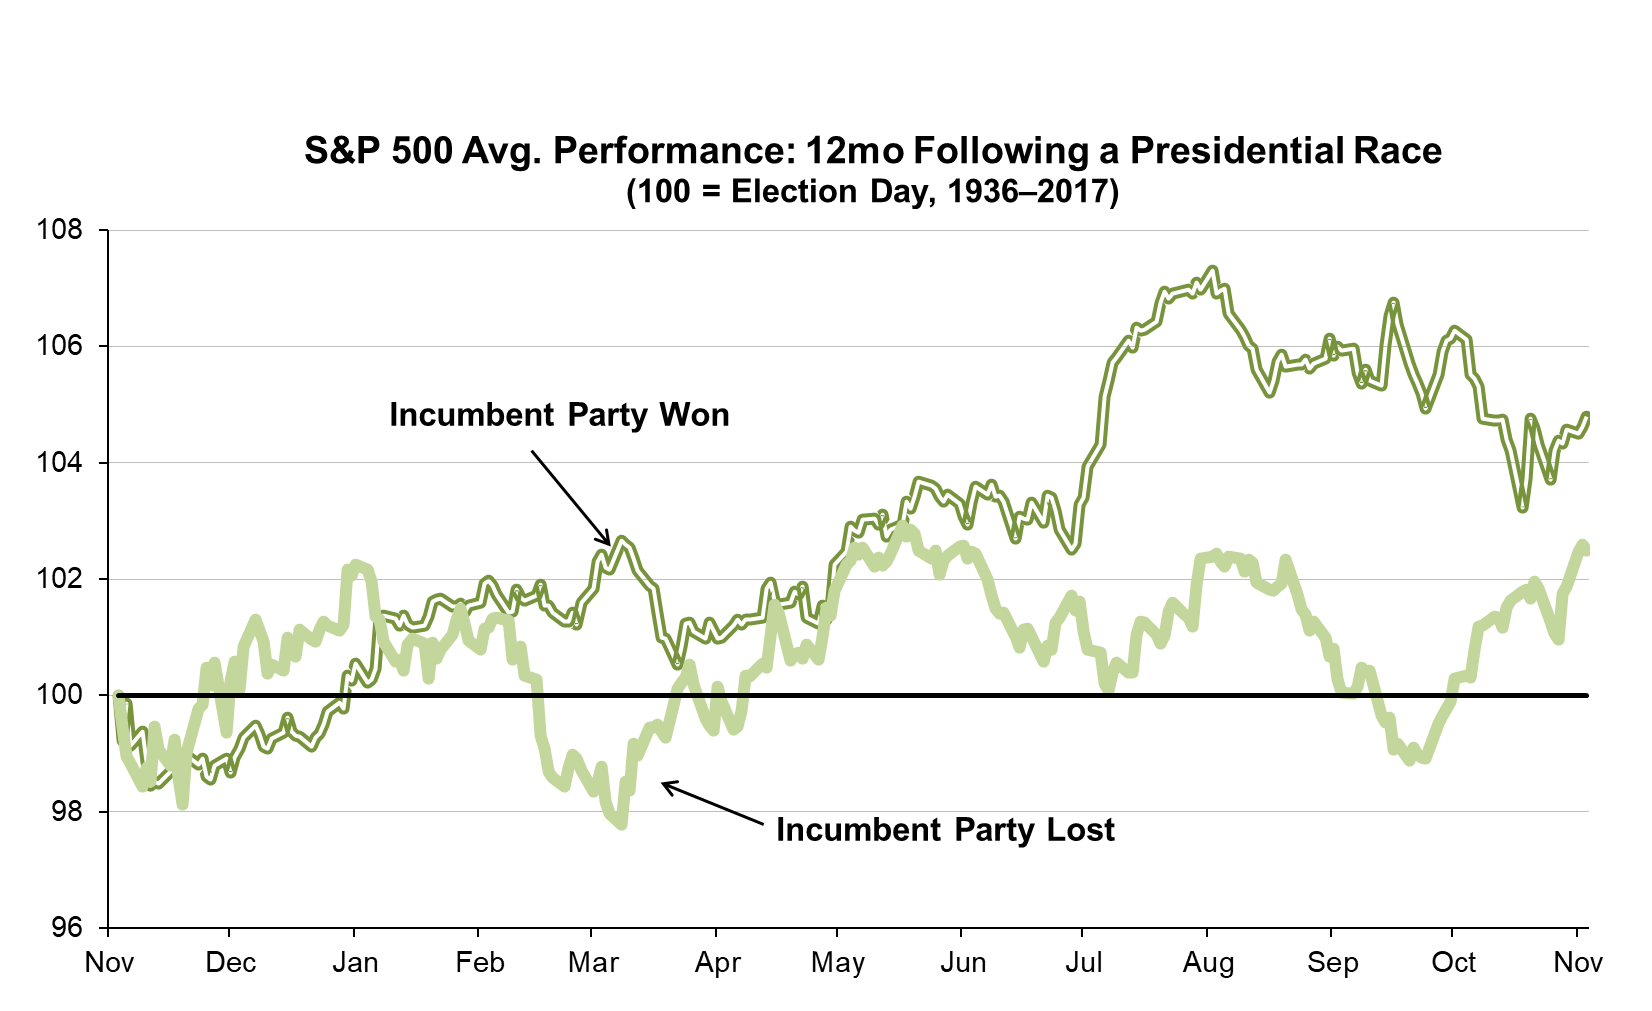 Average S&P 500 Performance: 12mo Following a Presidential Race